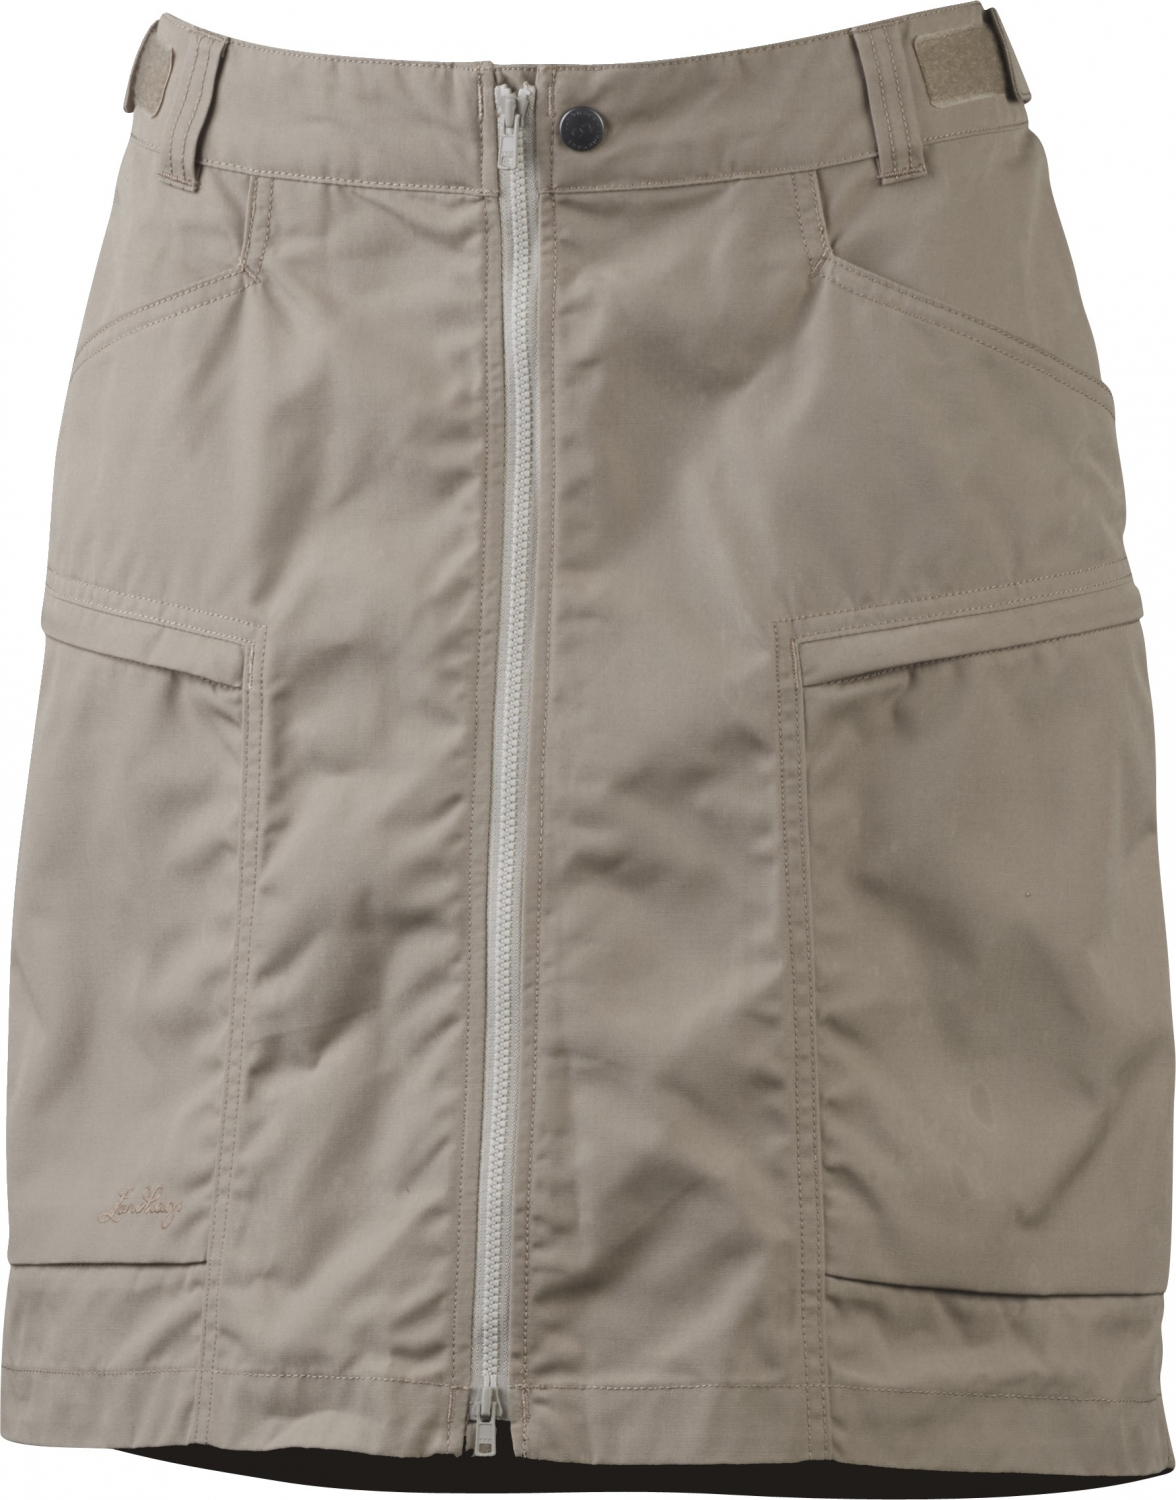 Sky-Blue Lundhags Tiven Ws Skirt Outdoorrock